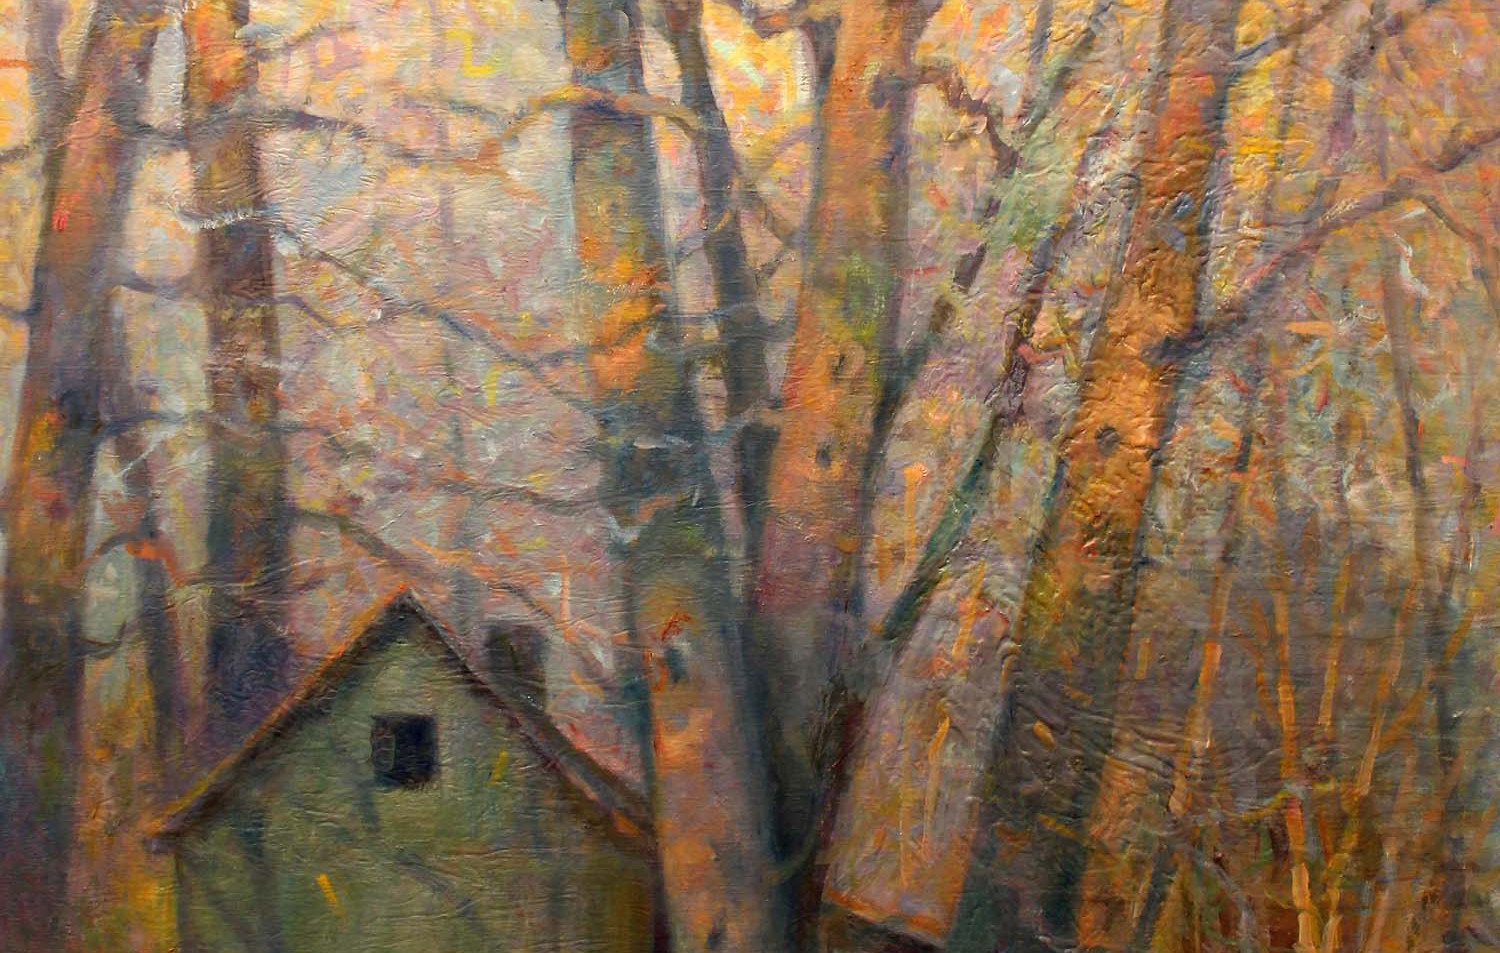 Nestled In 40 x 30 oil